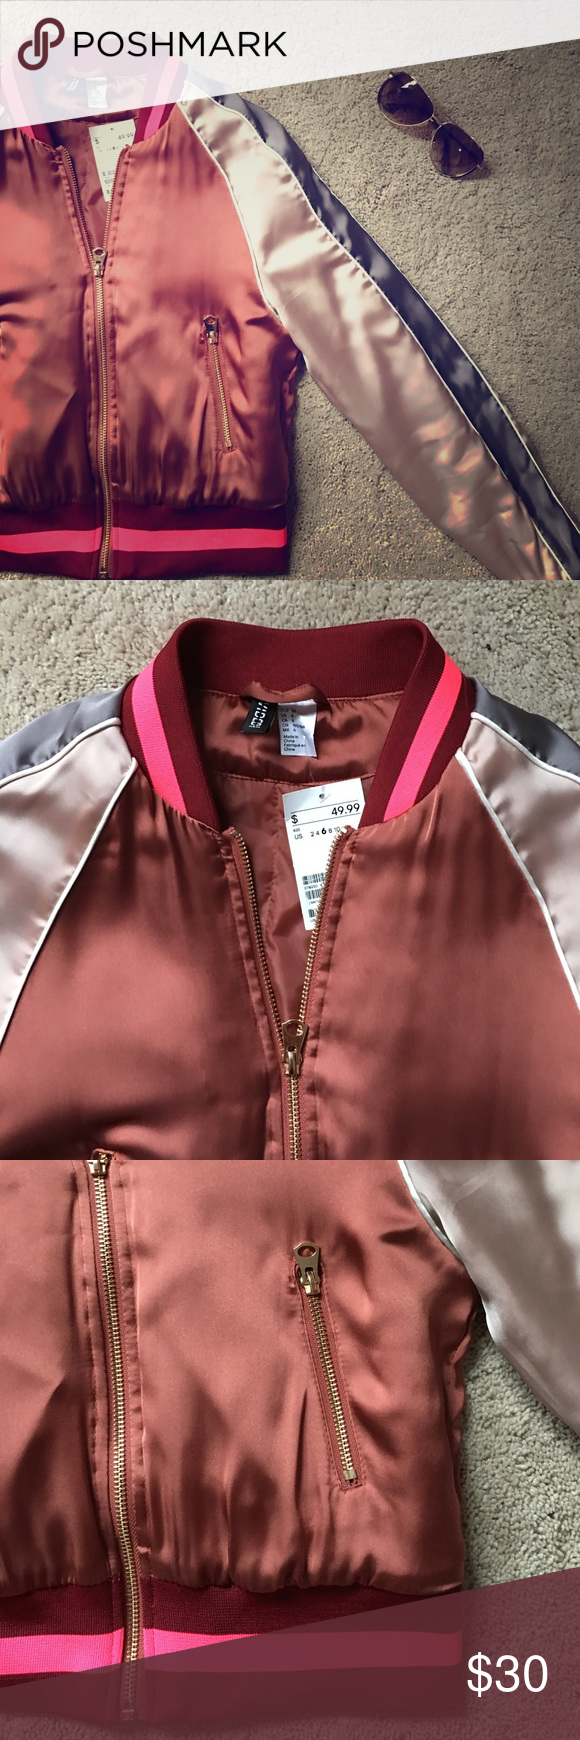 521c8b120 NWT H&M pink and brown satin bomber jacket. NWT H&M pink and brown ...